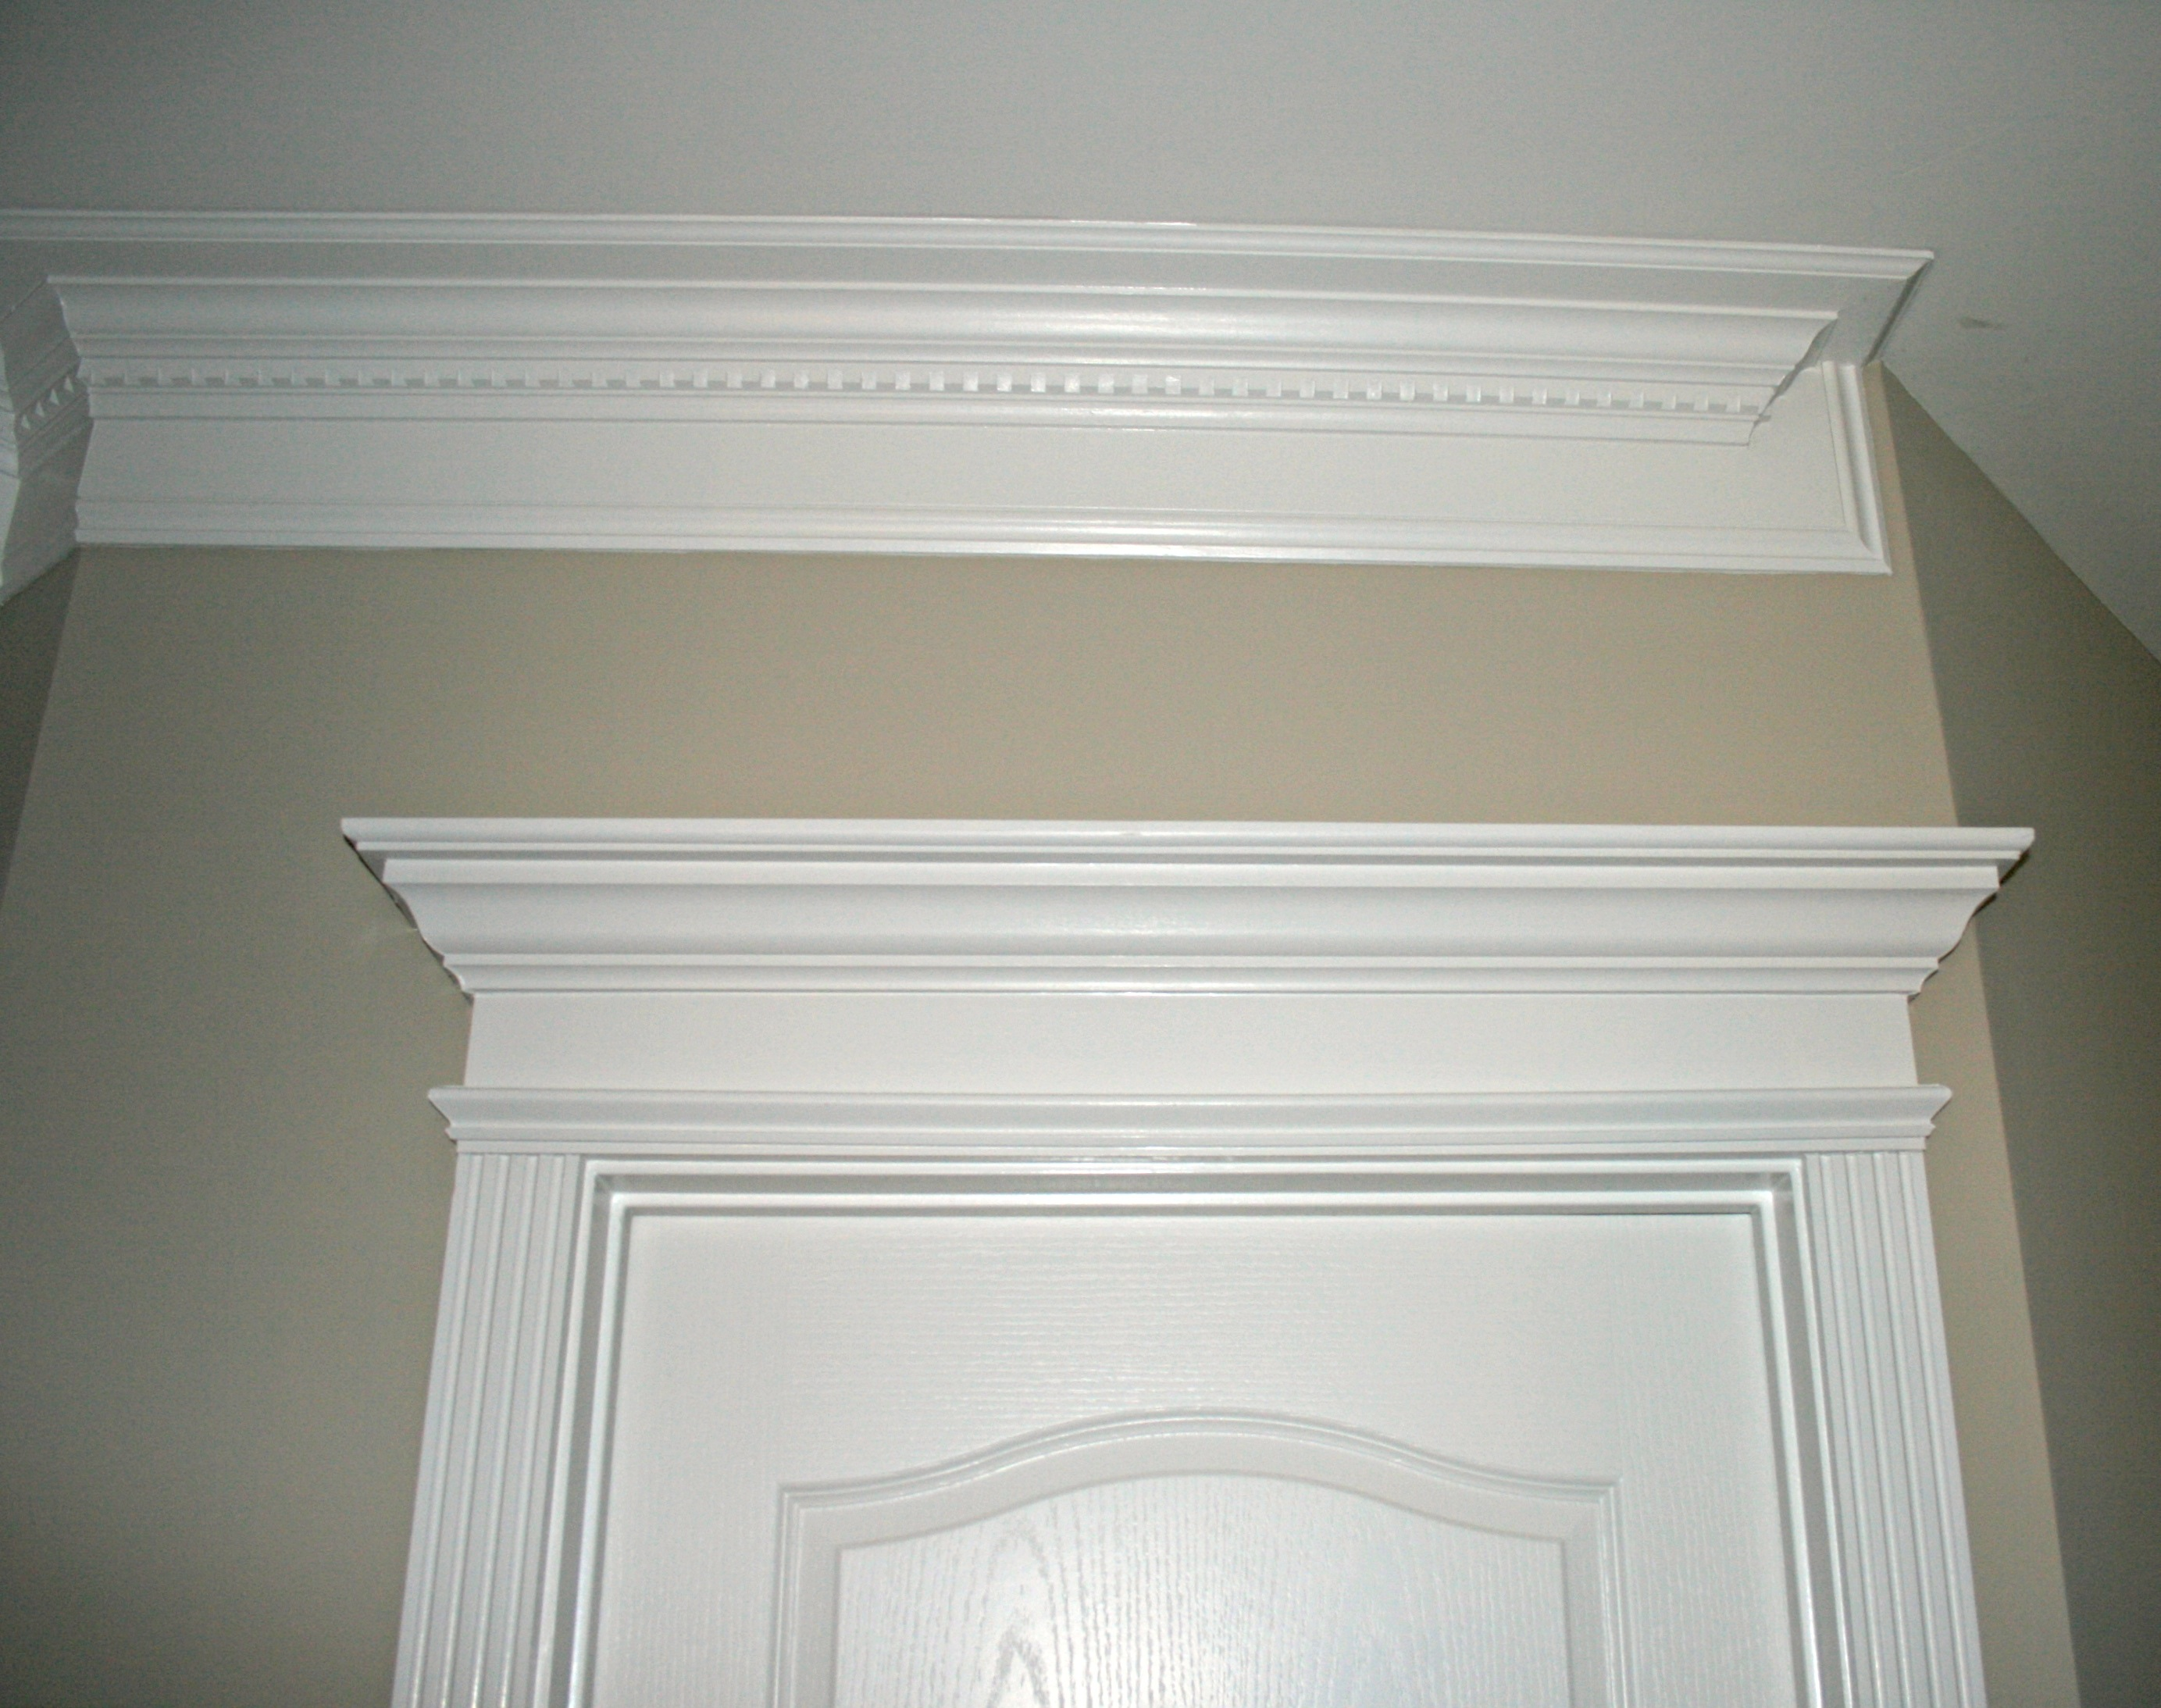 crown trim architectural decor corbel mesa decorative precast molding